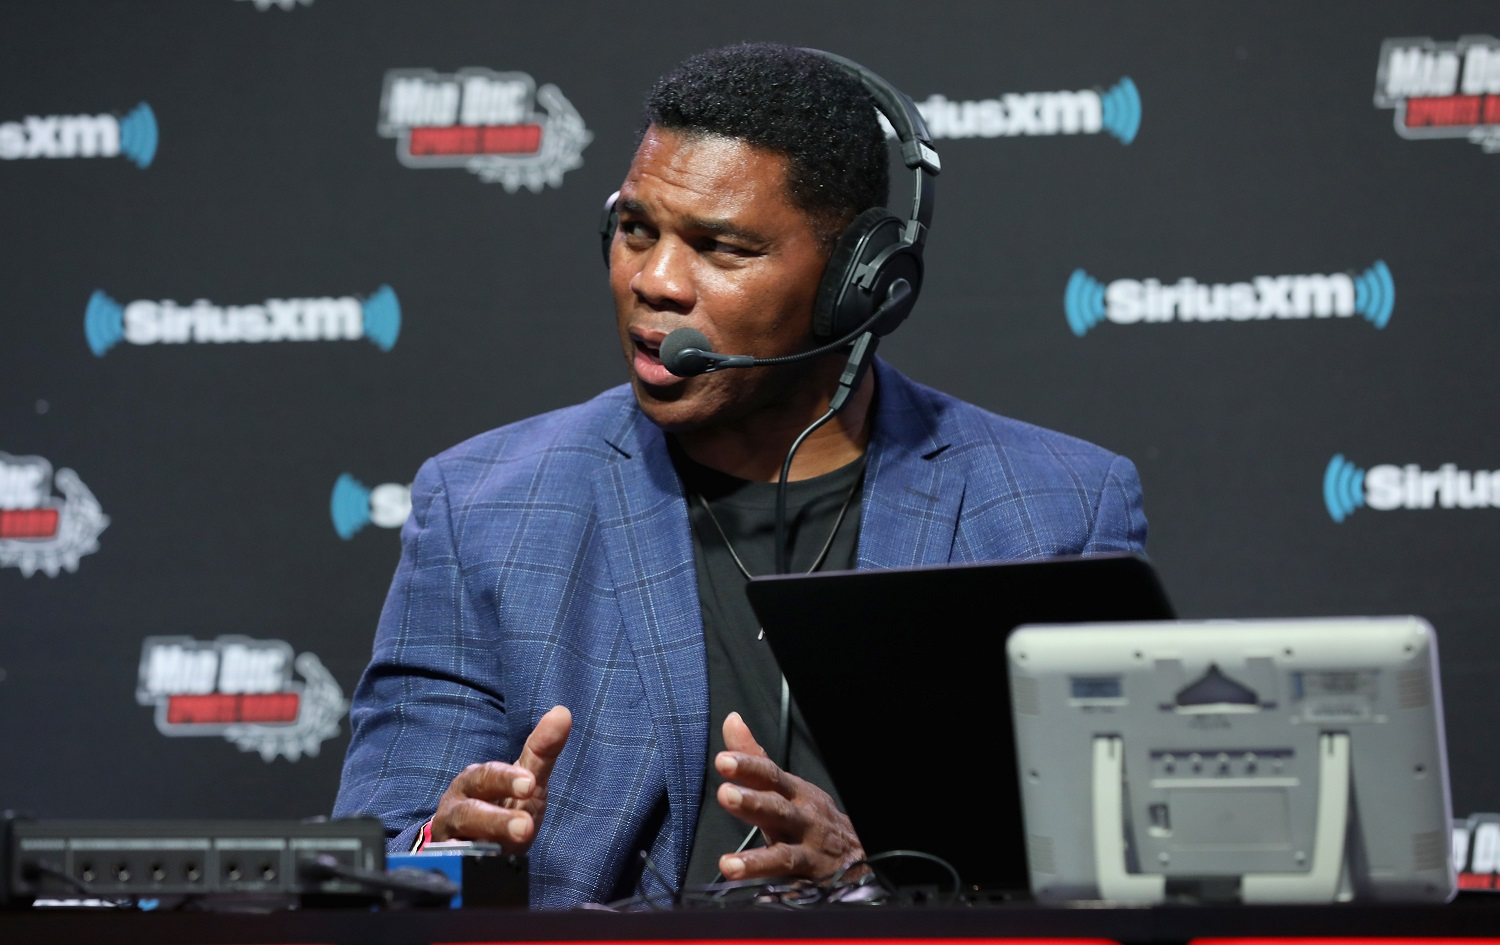 After 3,097 Rushing Attempts As a Pro, Herschel Walker Is Being Asked To Make 1 More Run